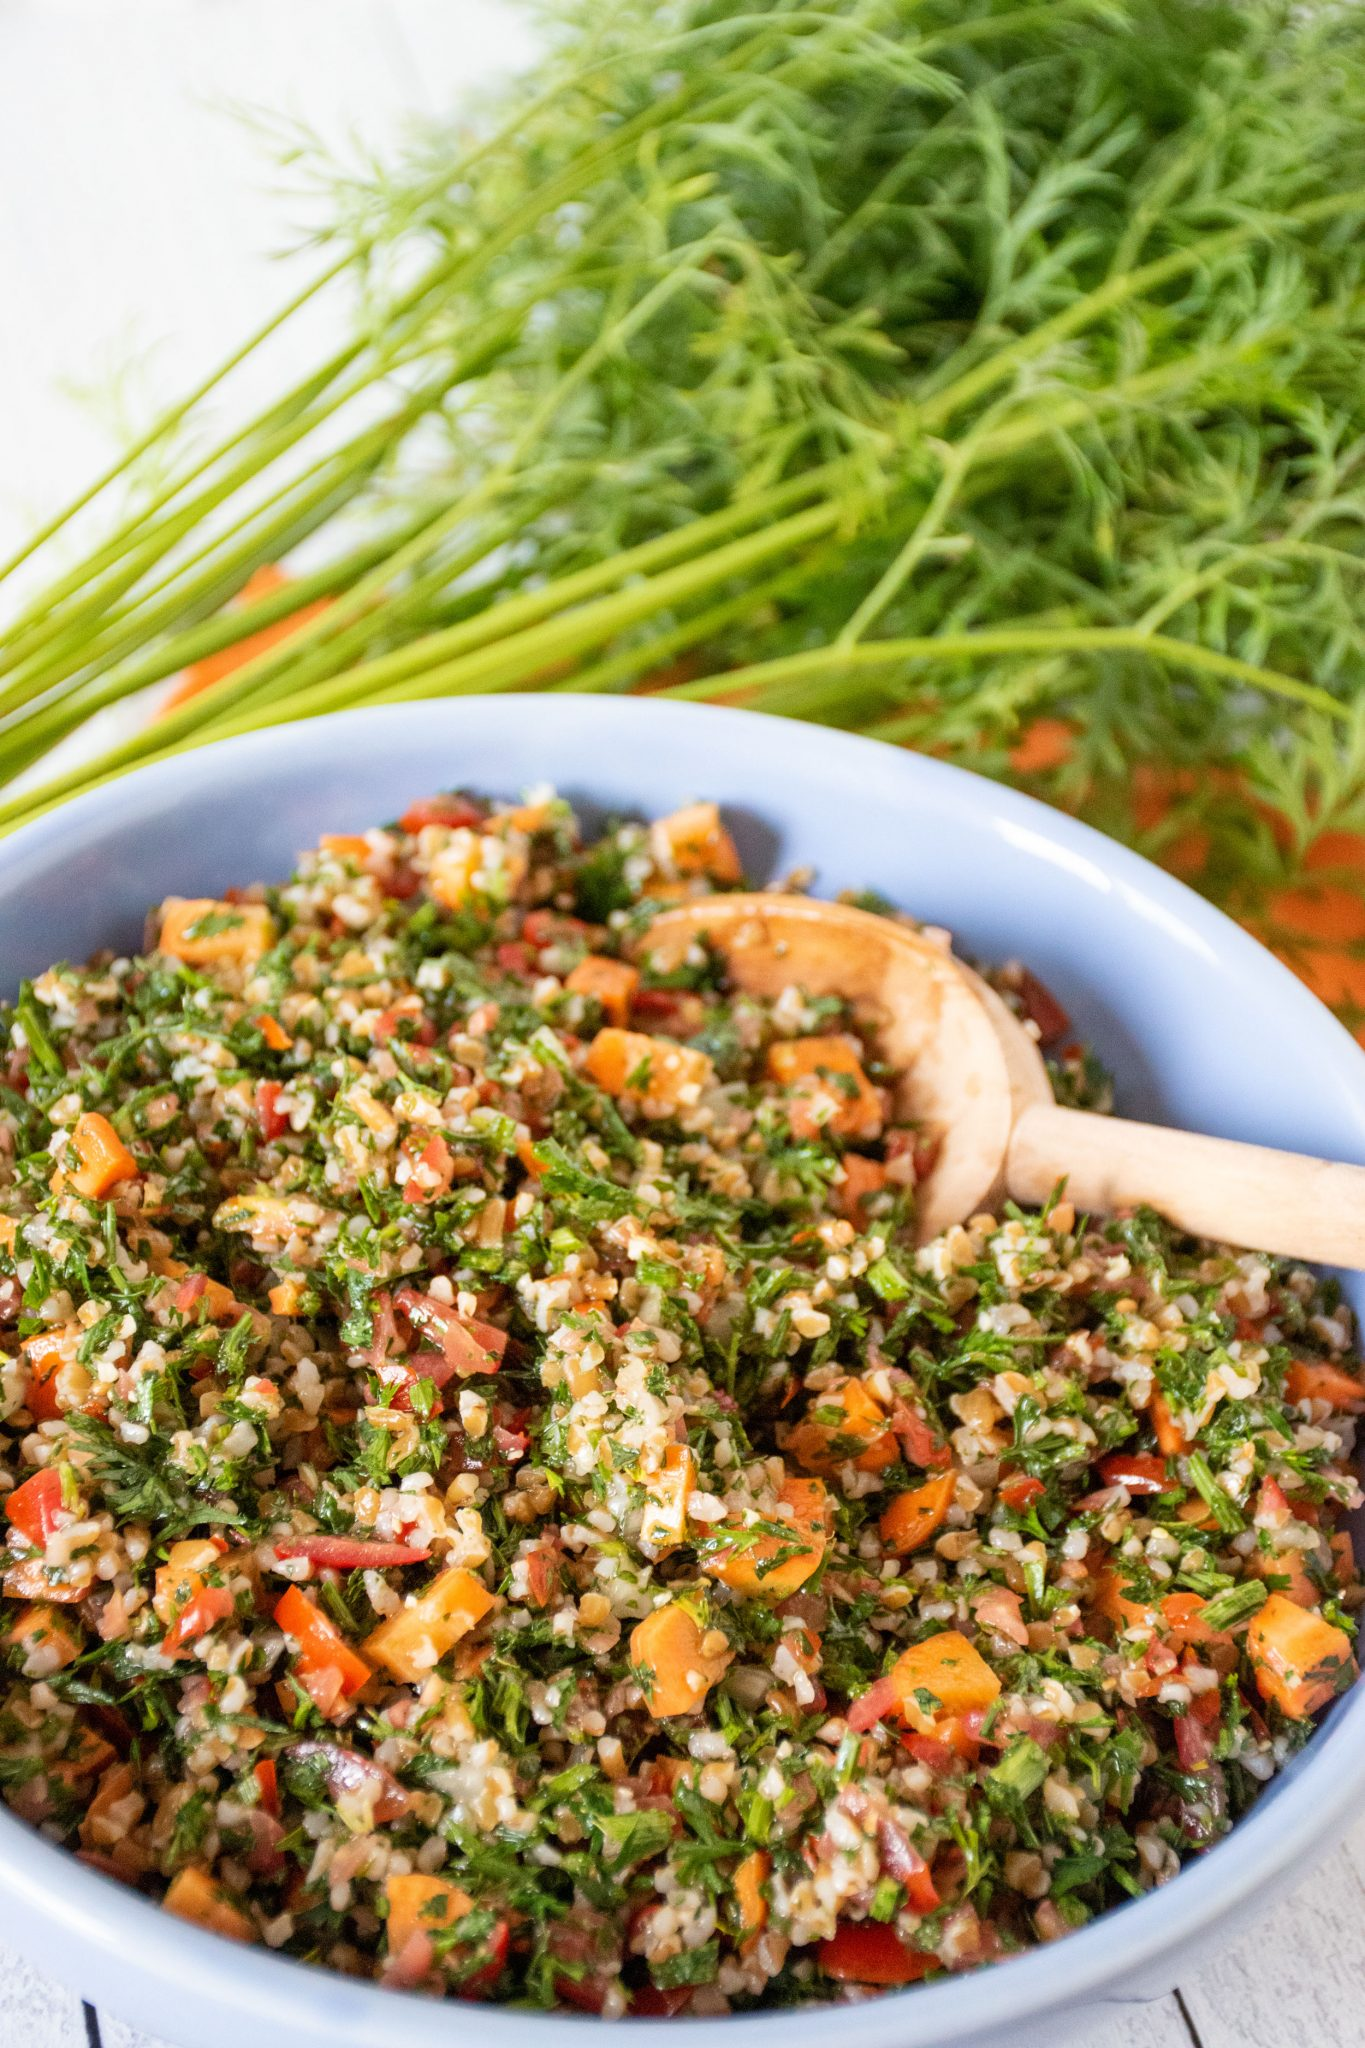 Close up of tabbouleh in blue bowl, with carrot tops visible in background.